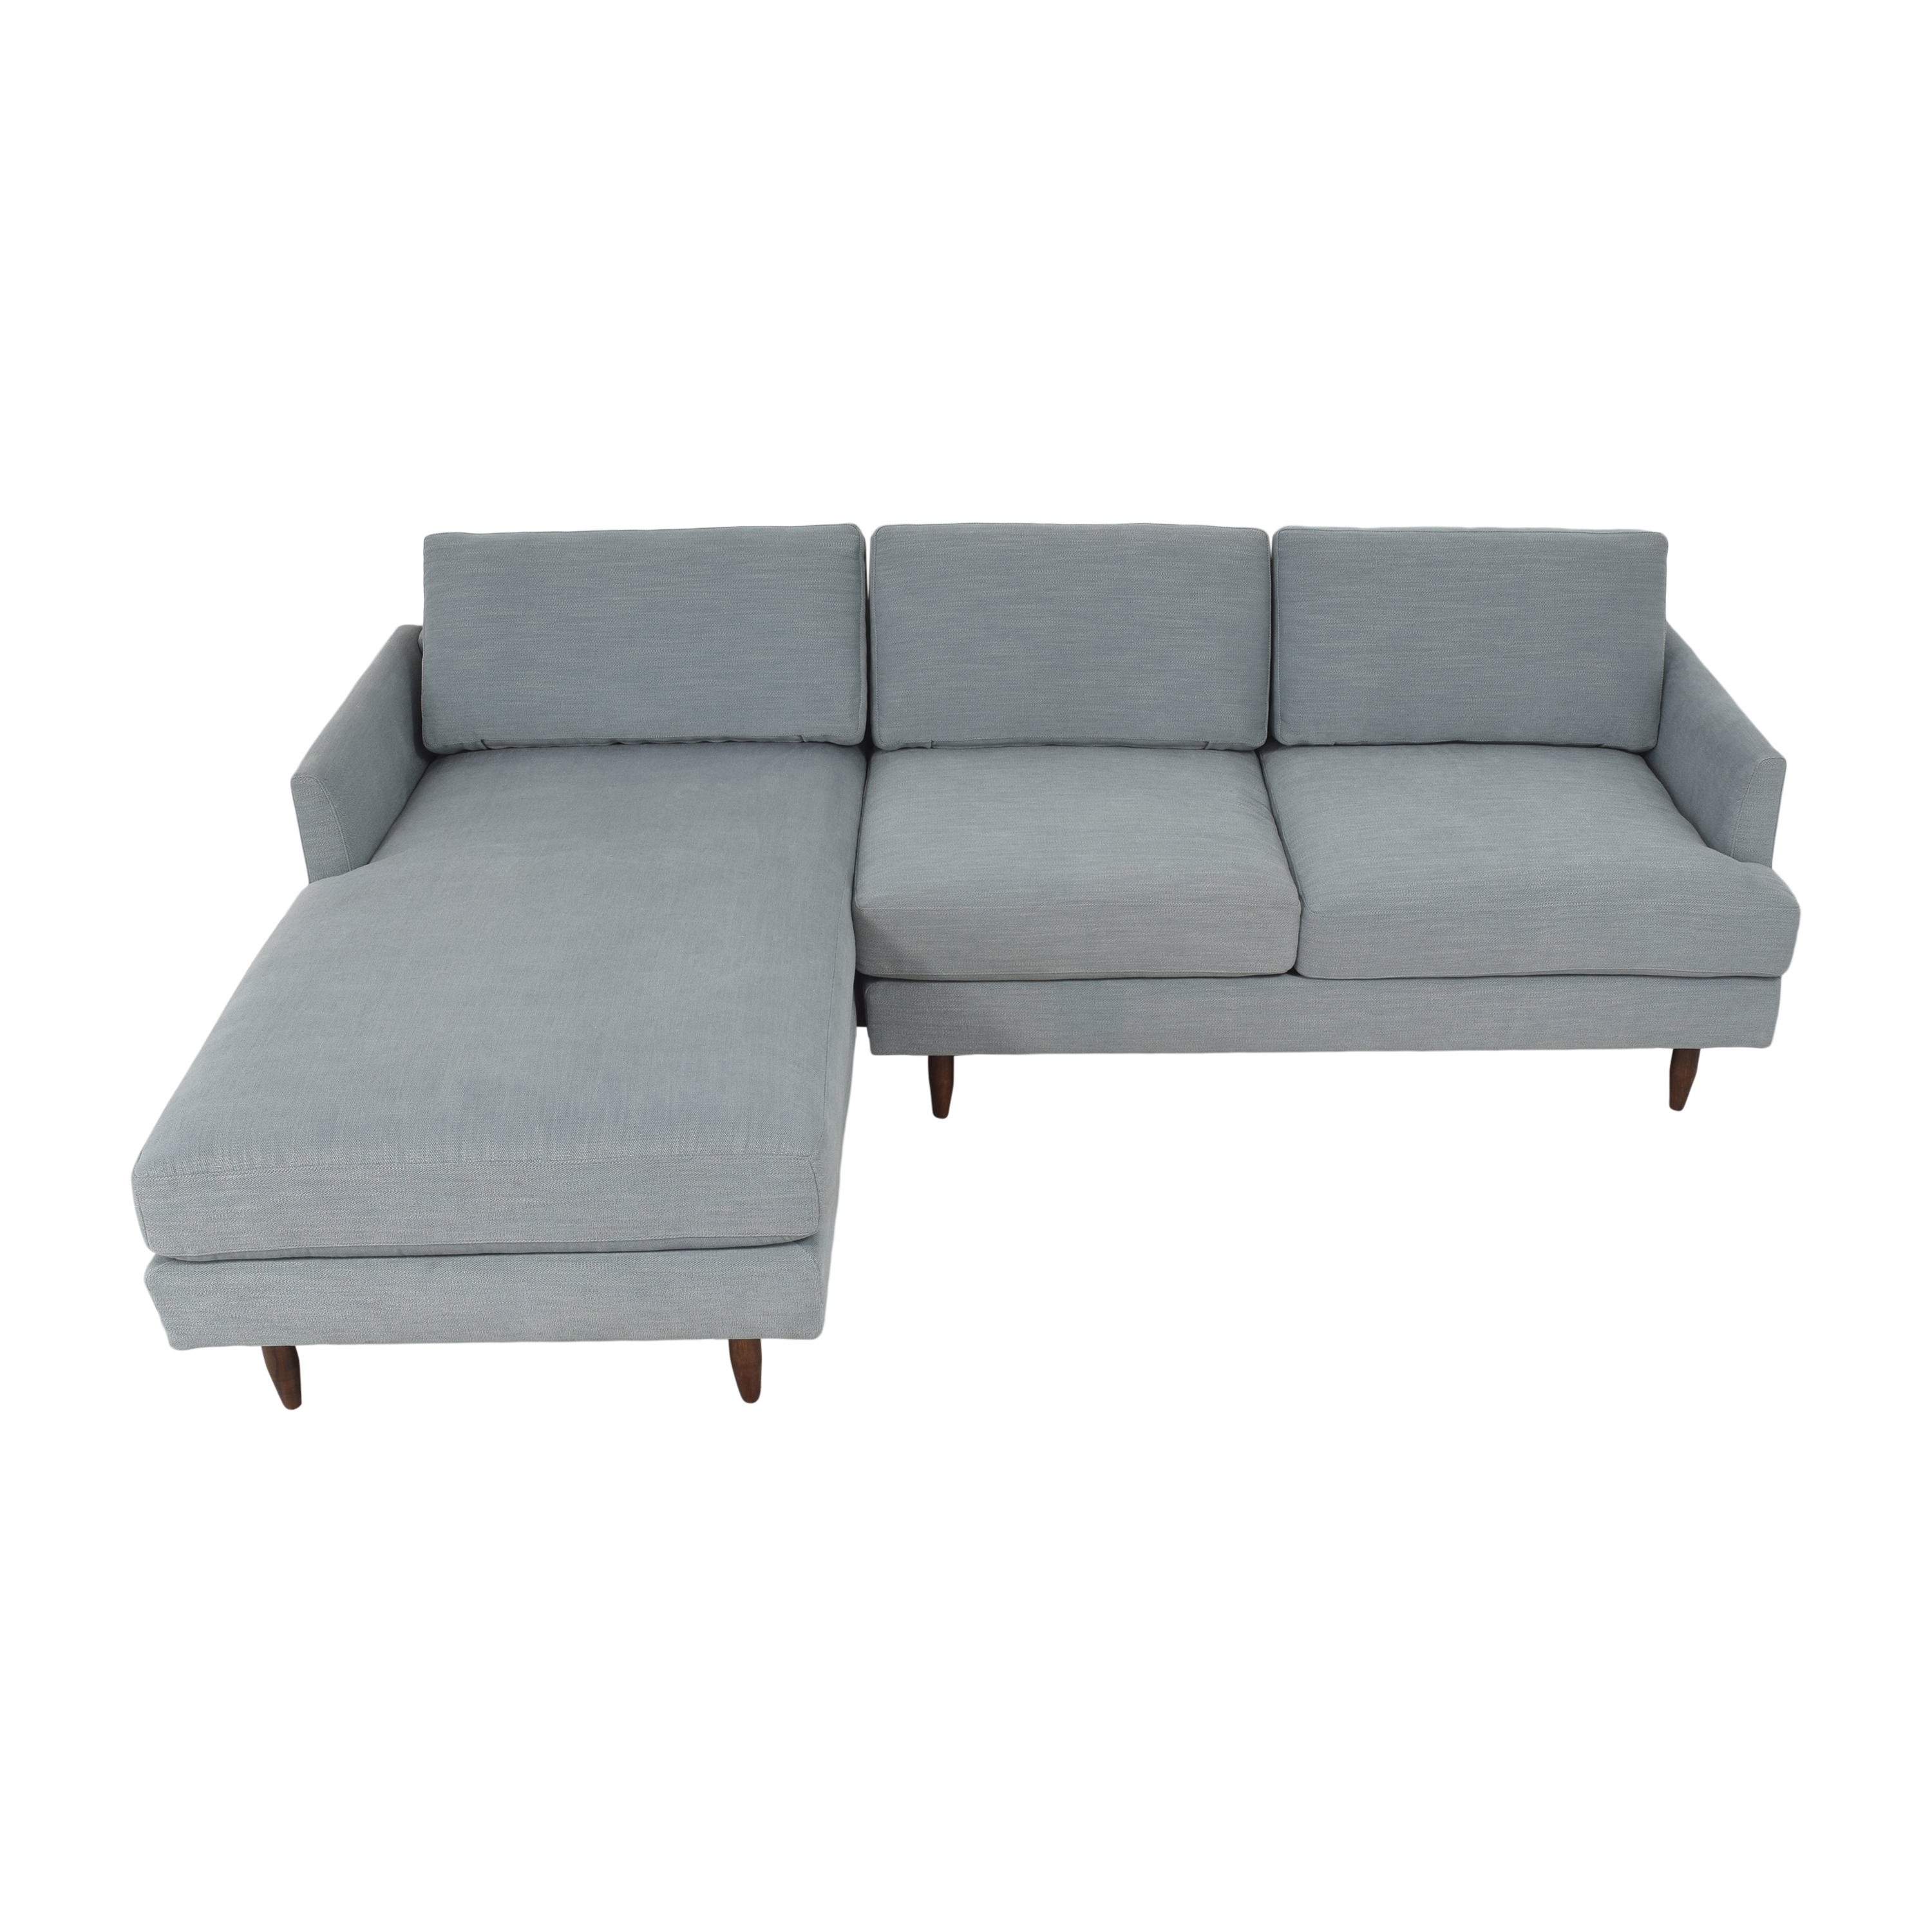 BenchMade Modern Crowd Pleaser Sectional Sofa with Chaise BenchMade Modern